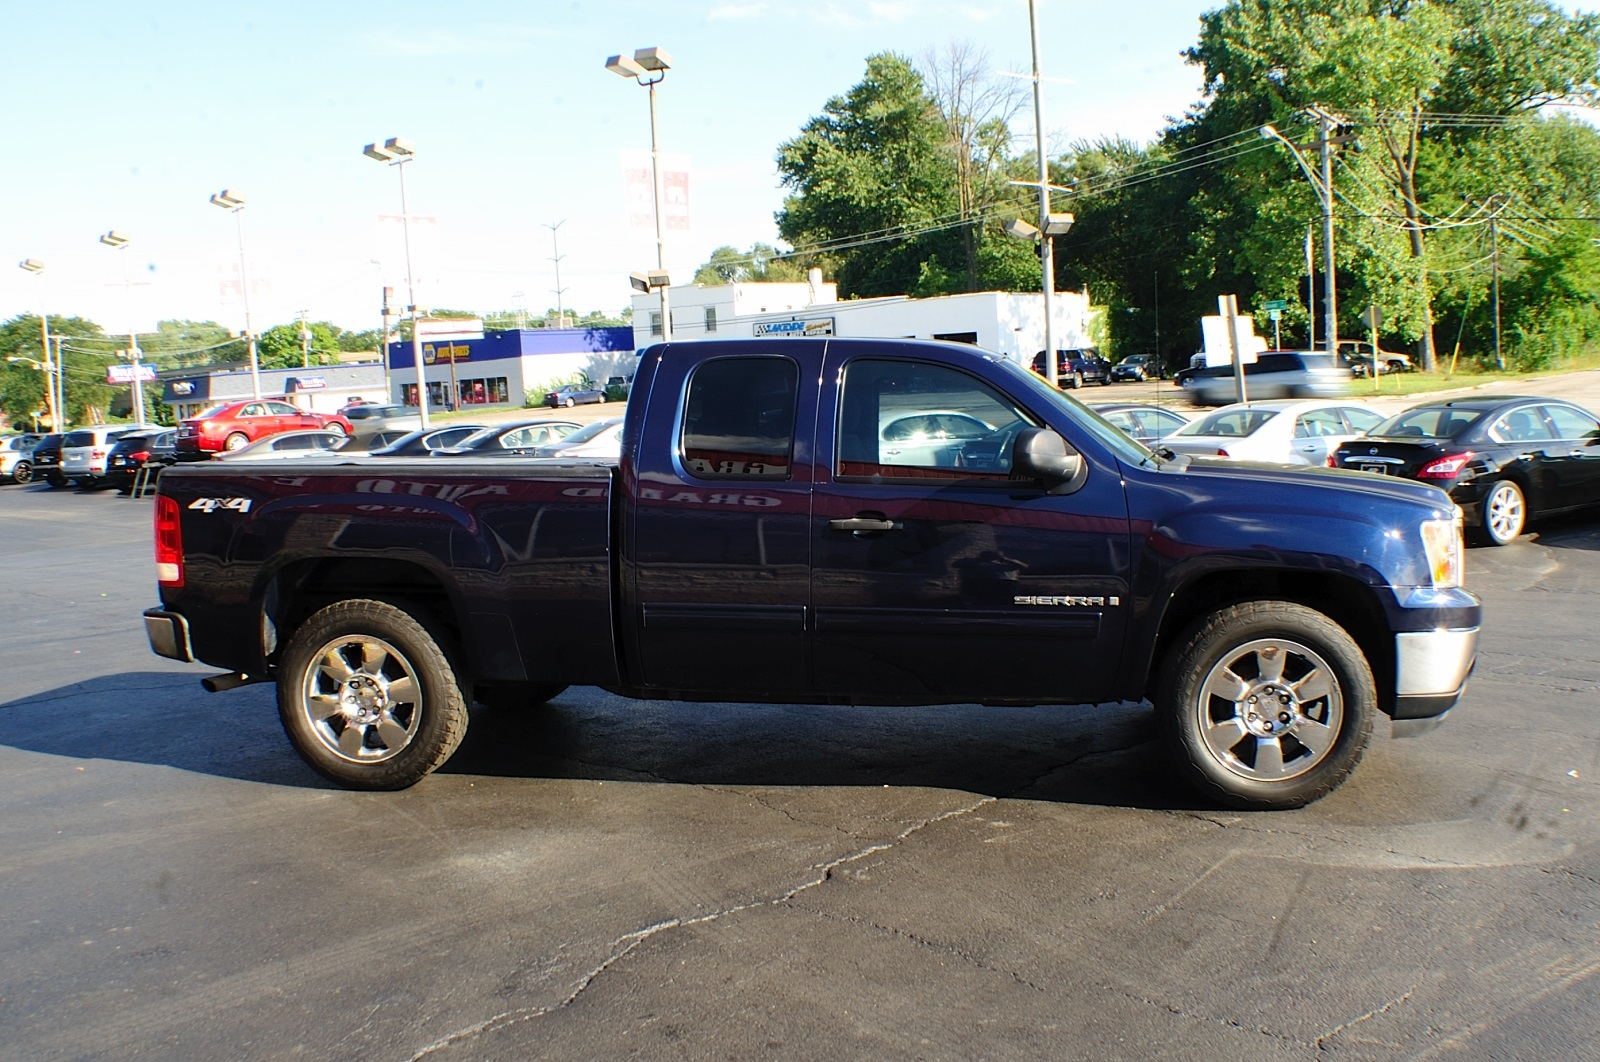 2009 GMC Sierra SLE Blue Used 4x4 Truck Sale Bannockburn Barrington Beach Park